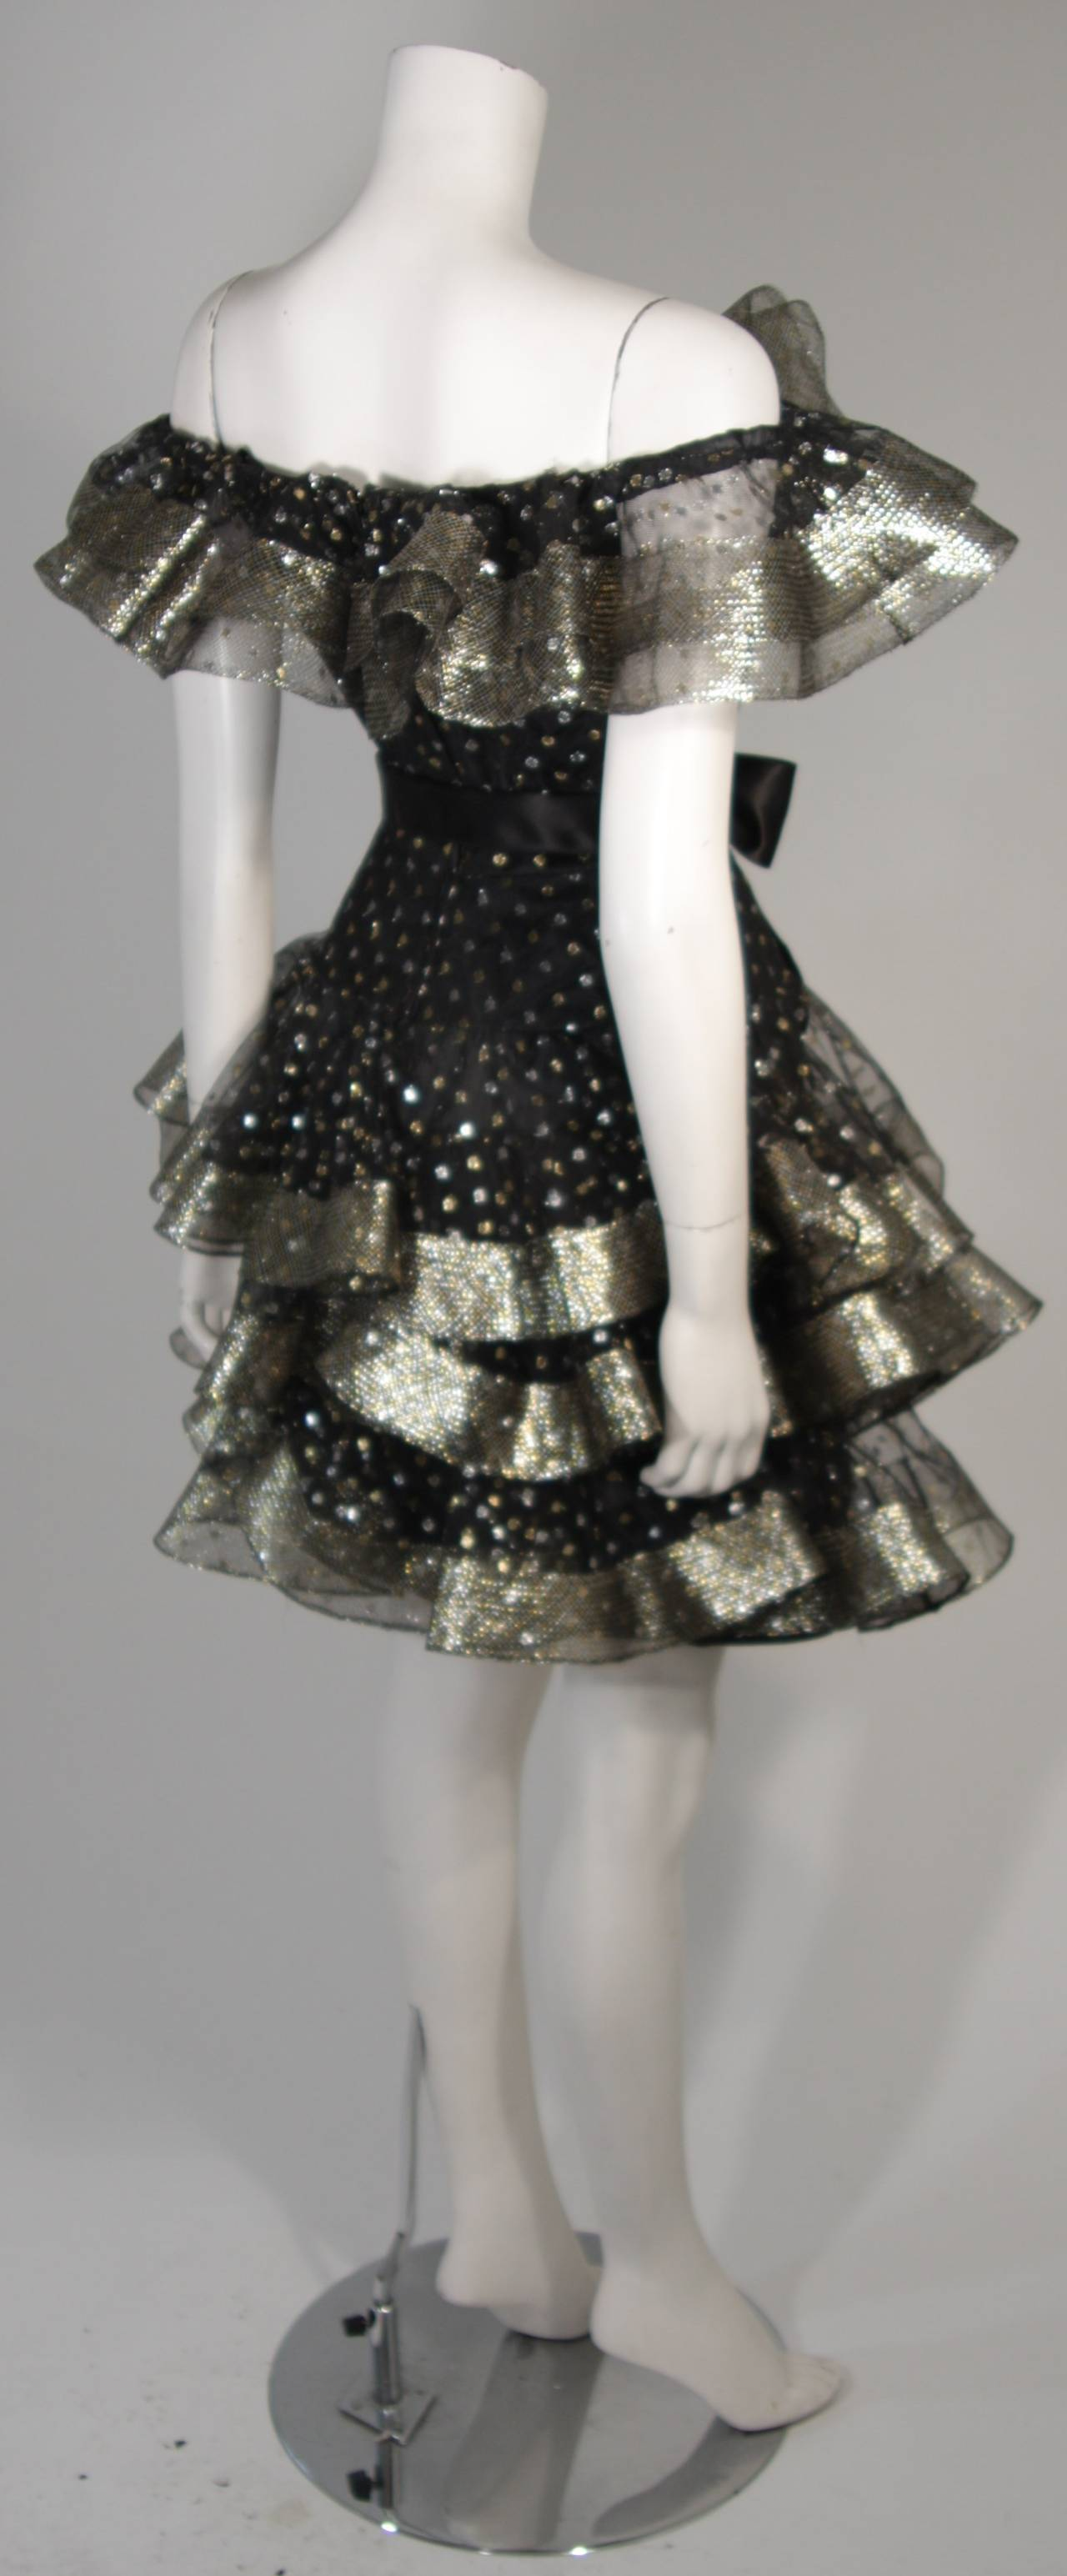 Victor Costa Black Ruffled Cocktail Dress with Silver and Gold Polka Dots Size 2 For Sale 3